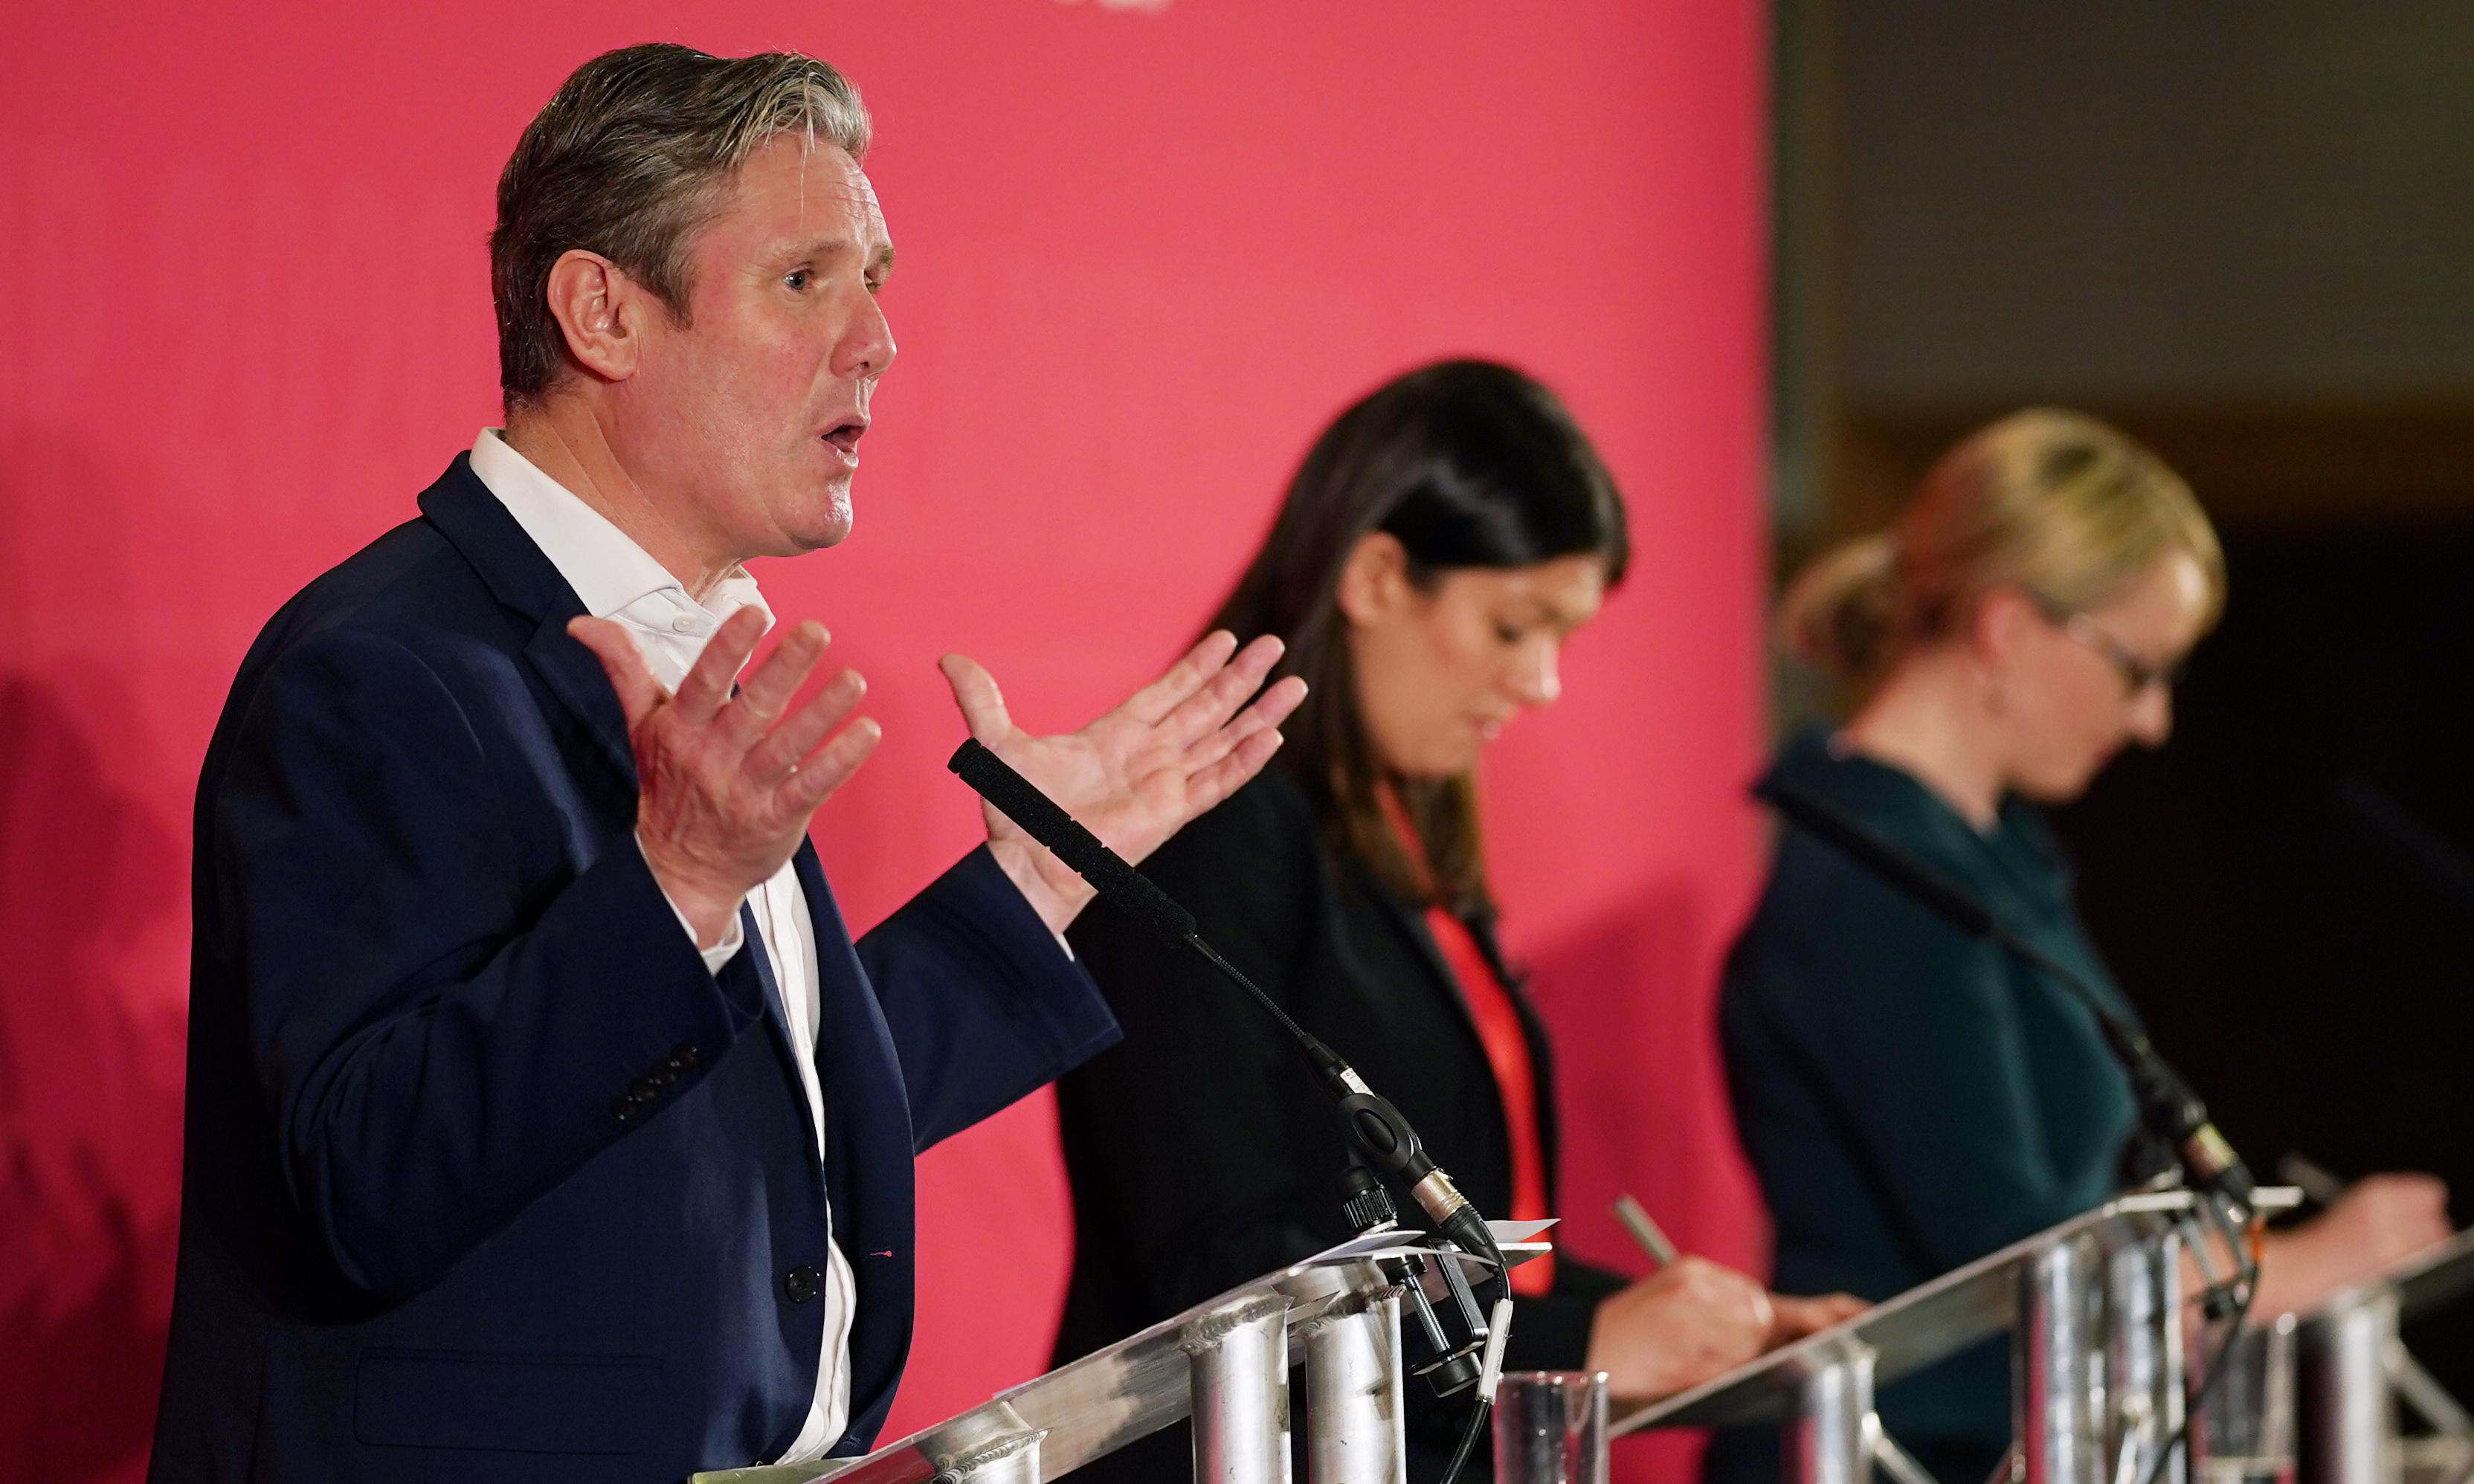 Keir Starmer commits to offering Nandy and Long-Bailey shadow cabinet jobs